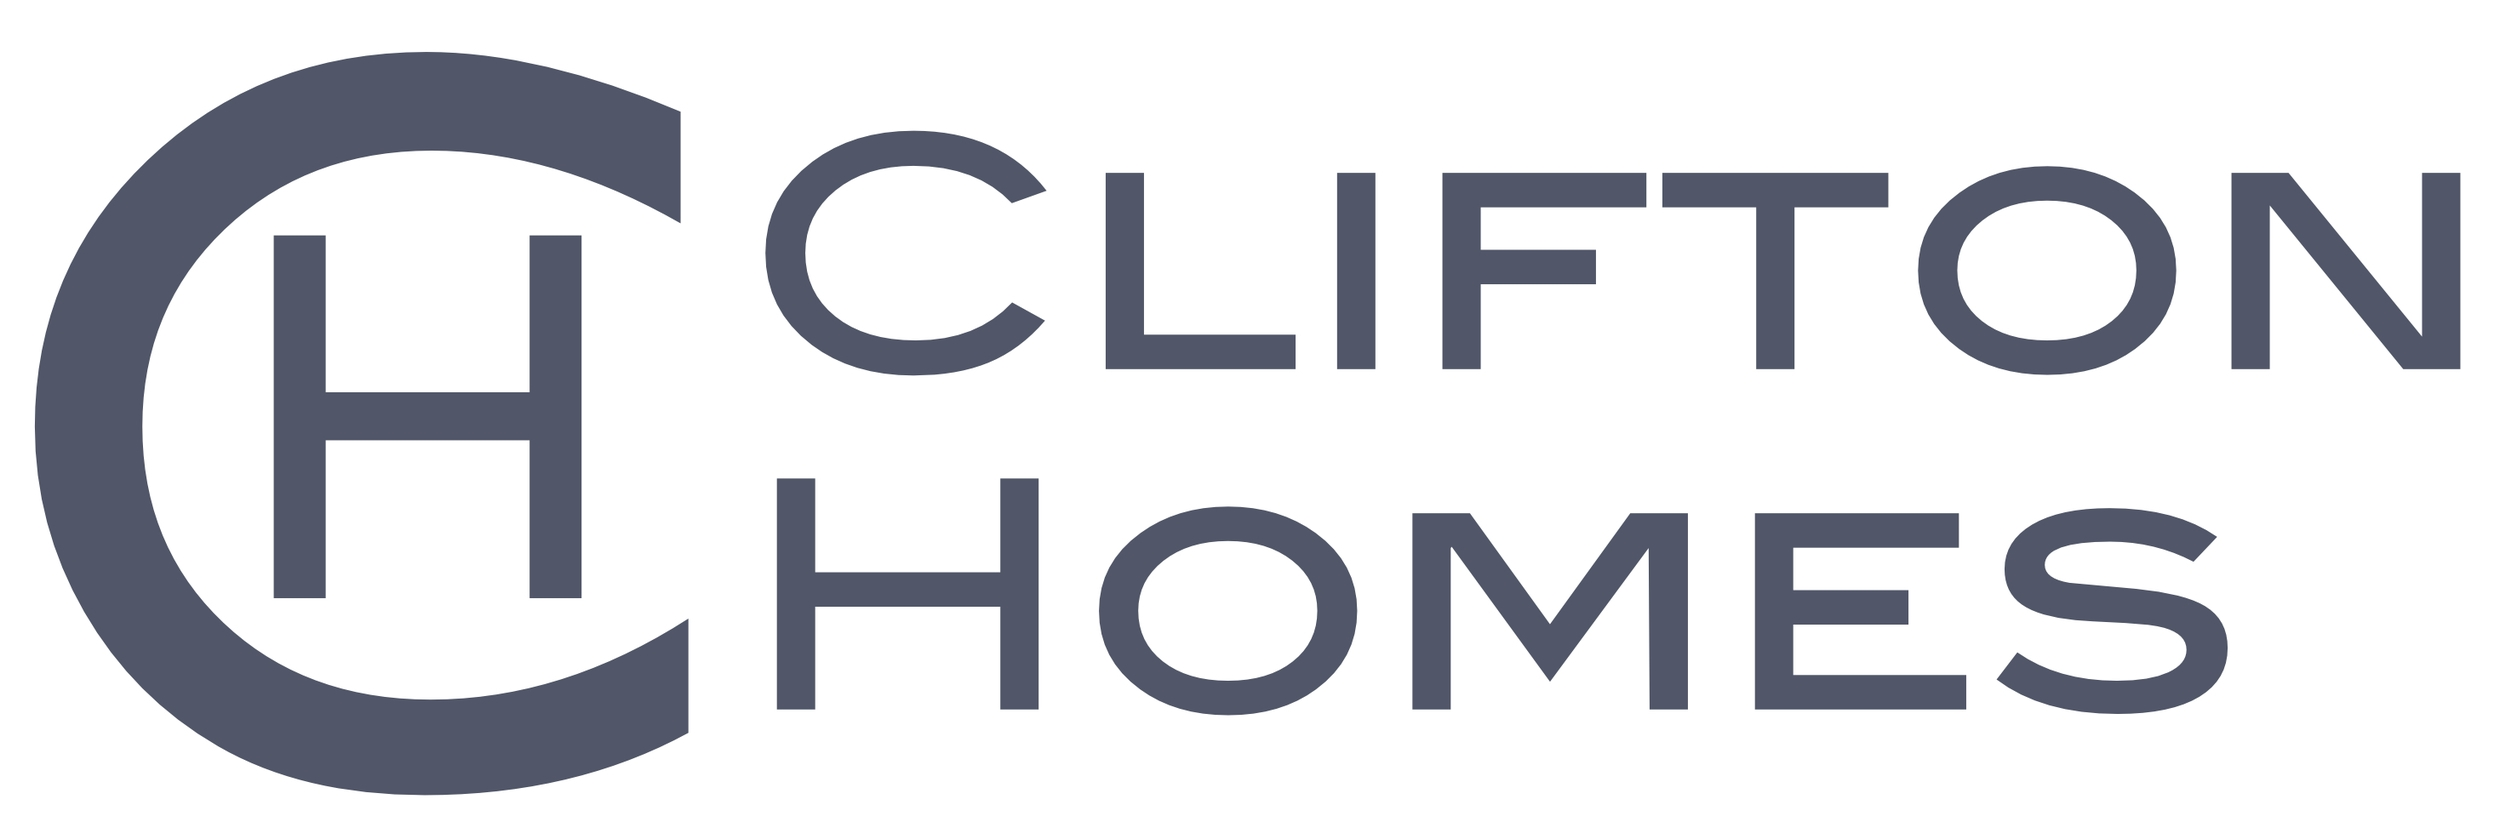 clifton-homes.jpg